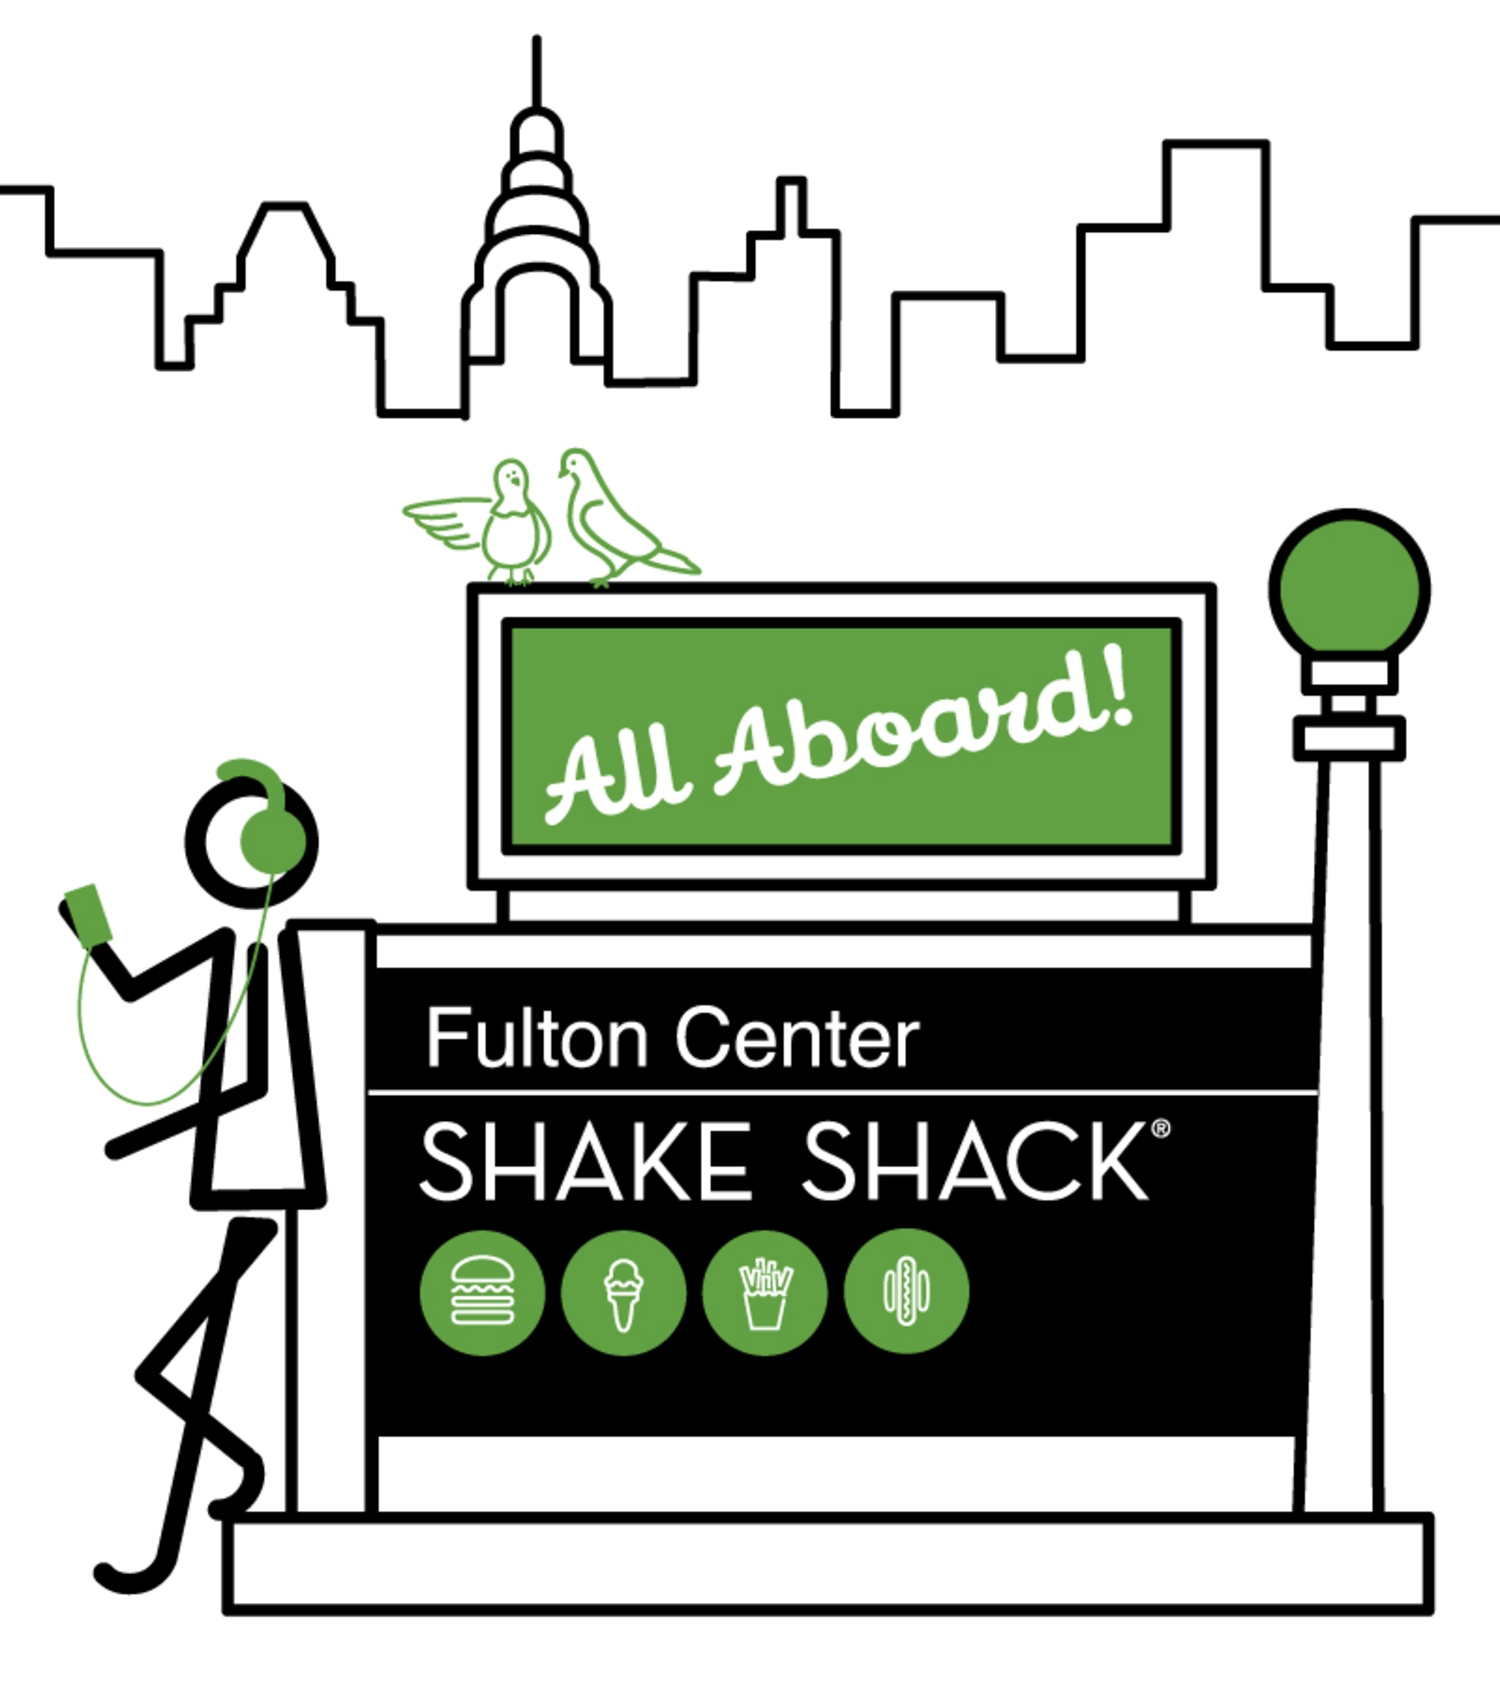 Fulton Center to Get Shake Shack in 2016